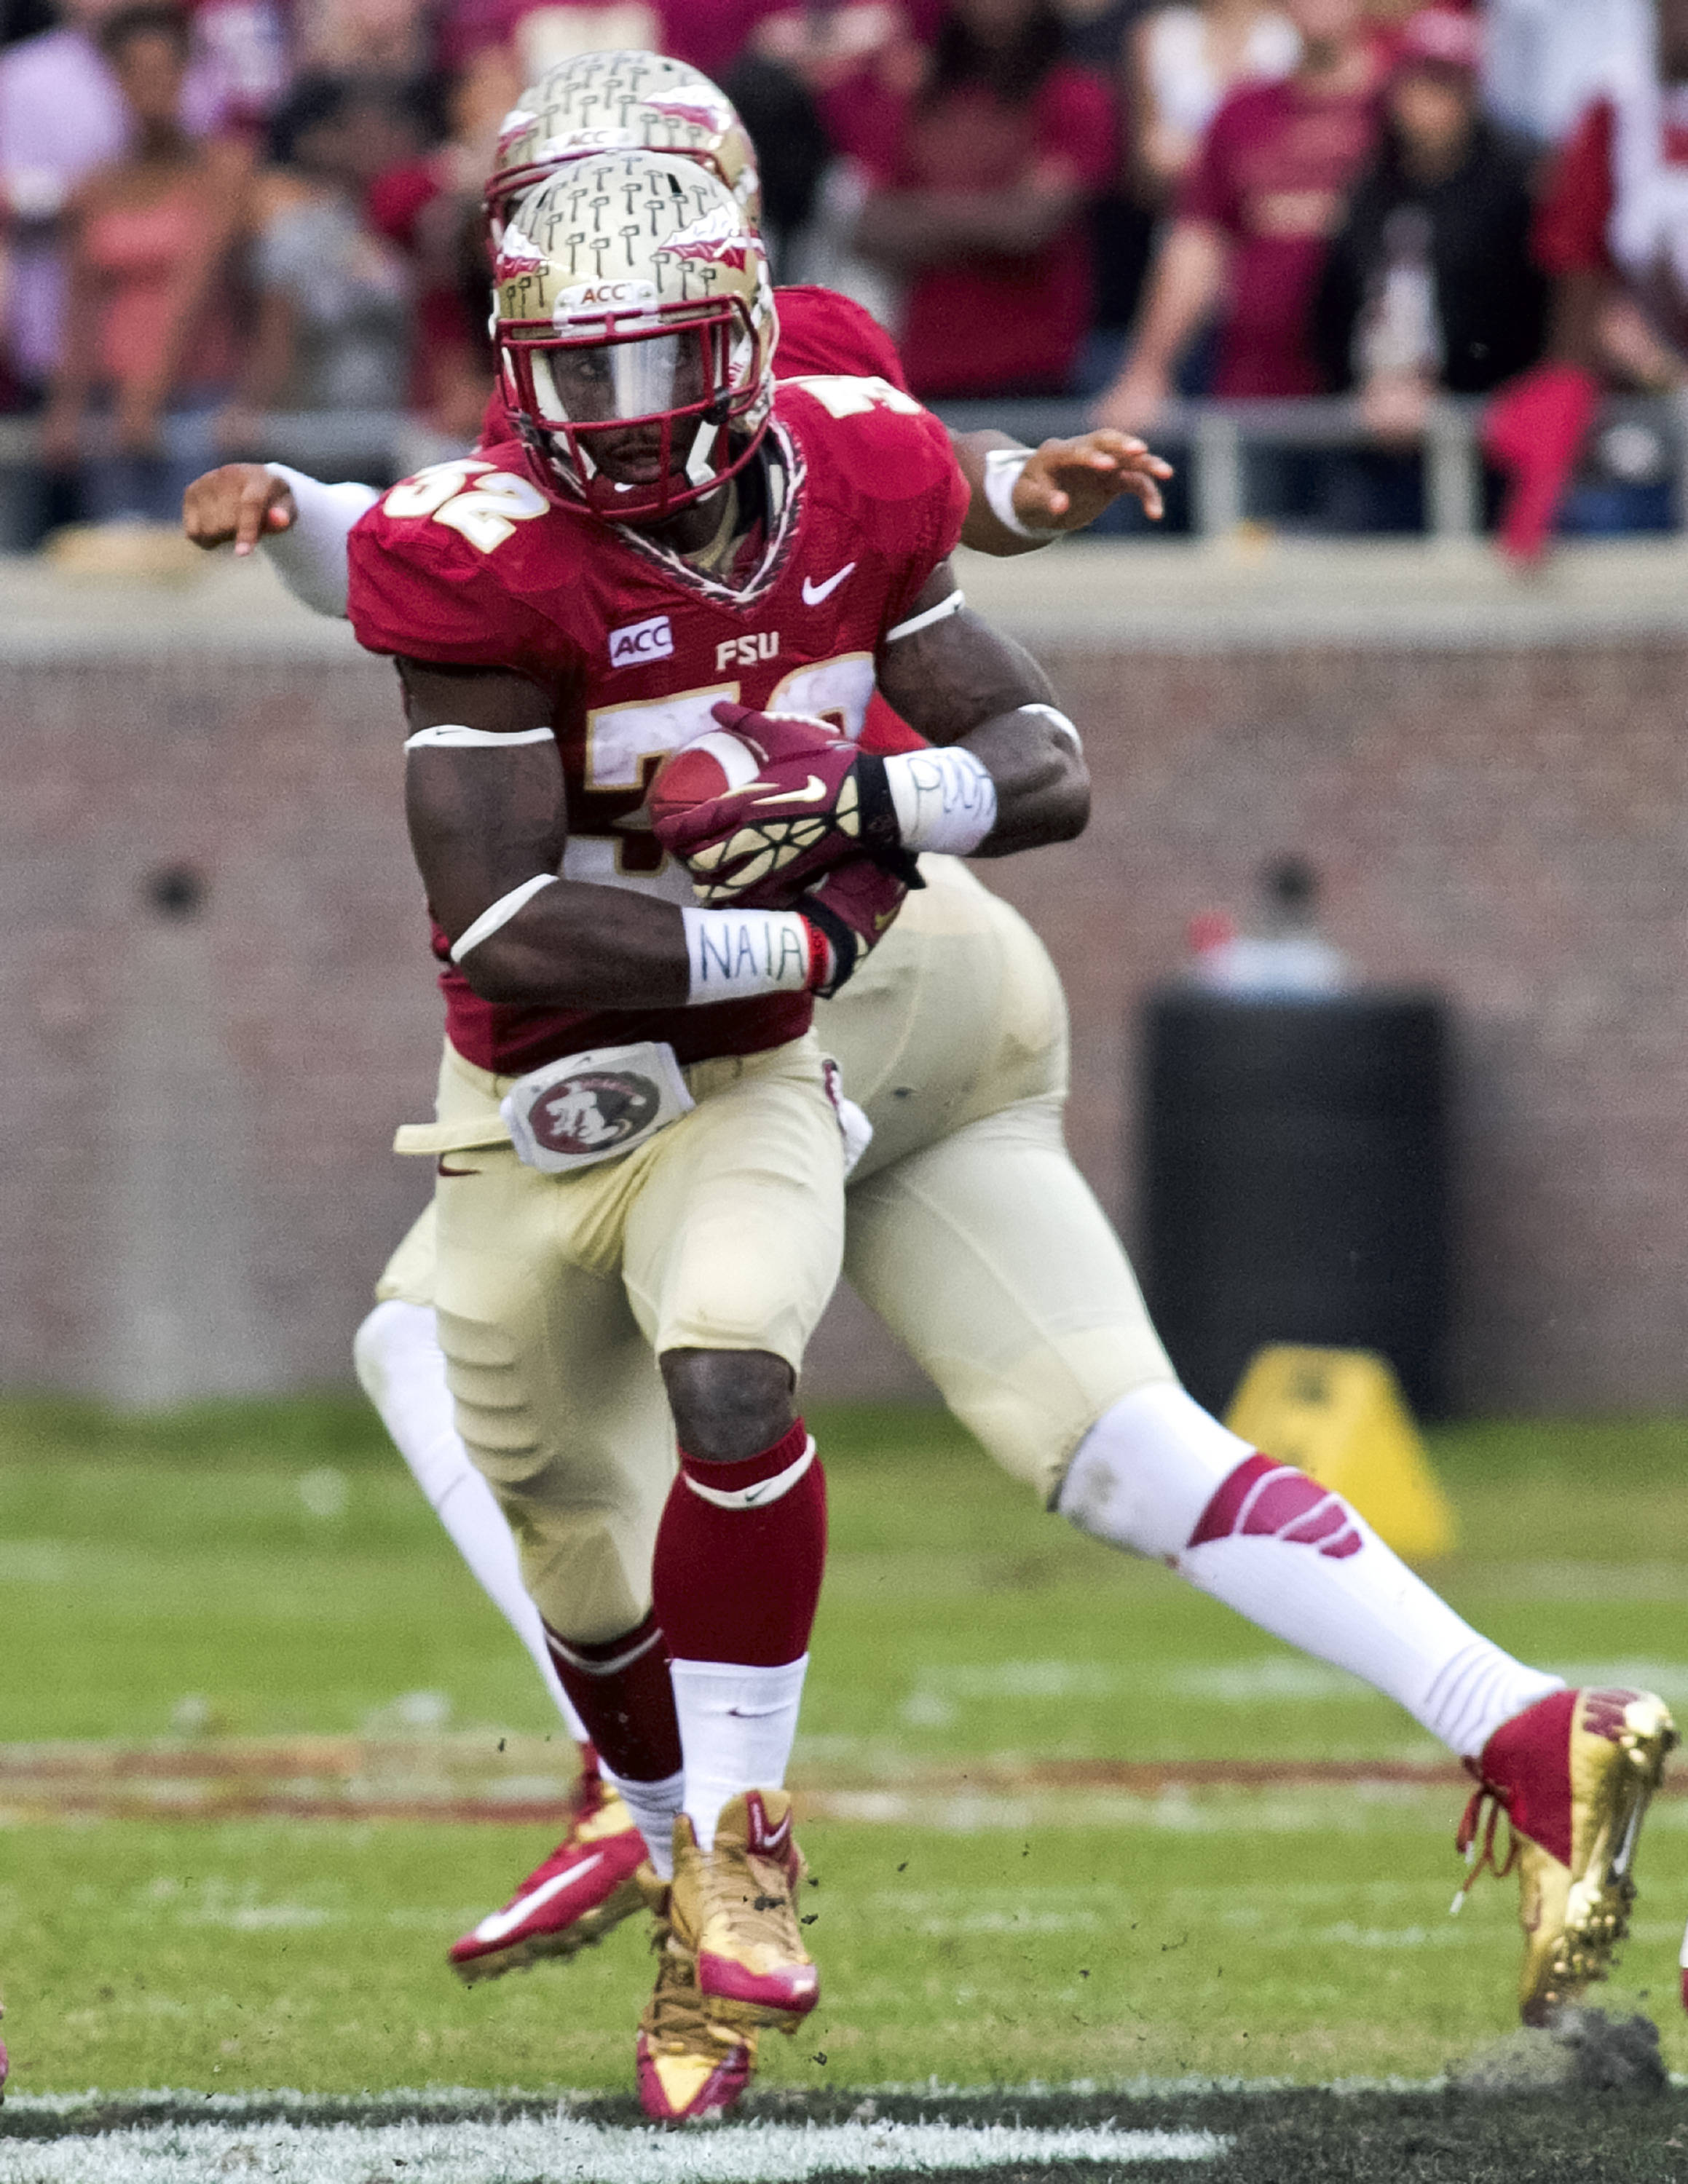 James Wilder, Jr. (32), FSU vs Syracuse, 11-16-13, (Photo by Steve Musco)